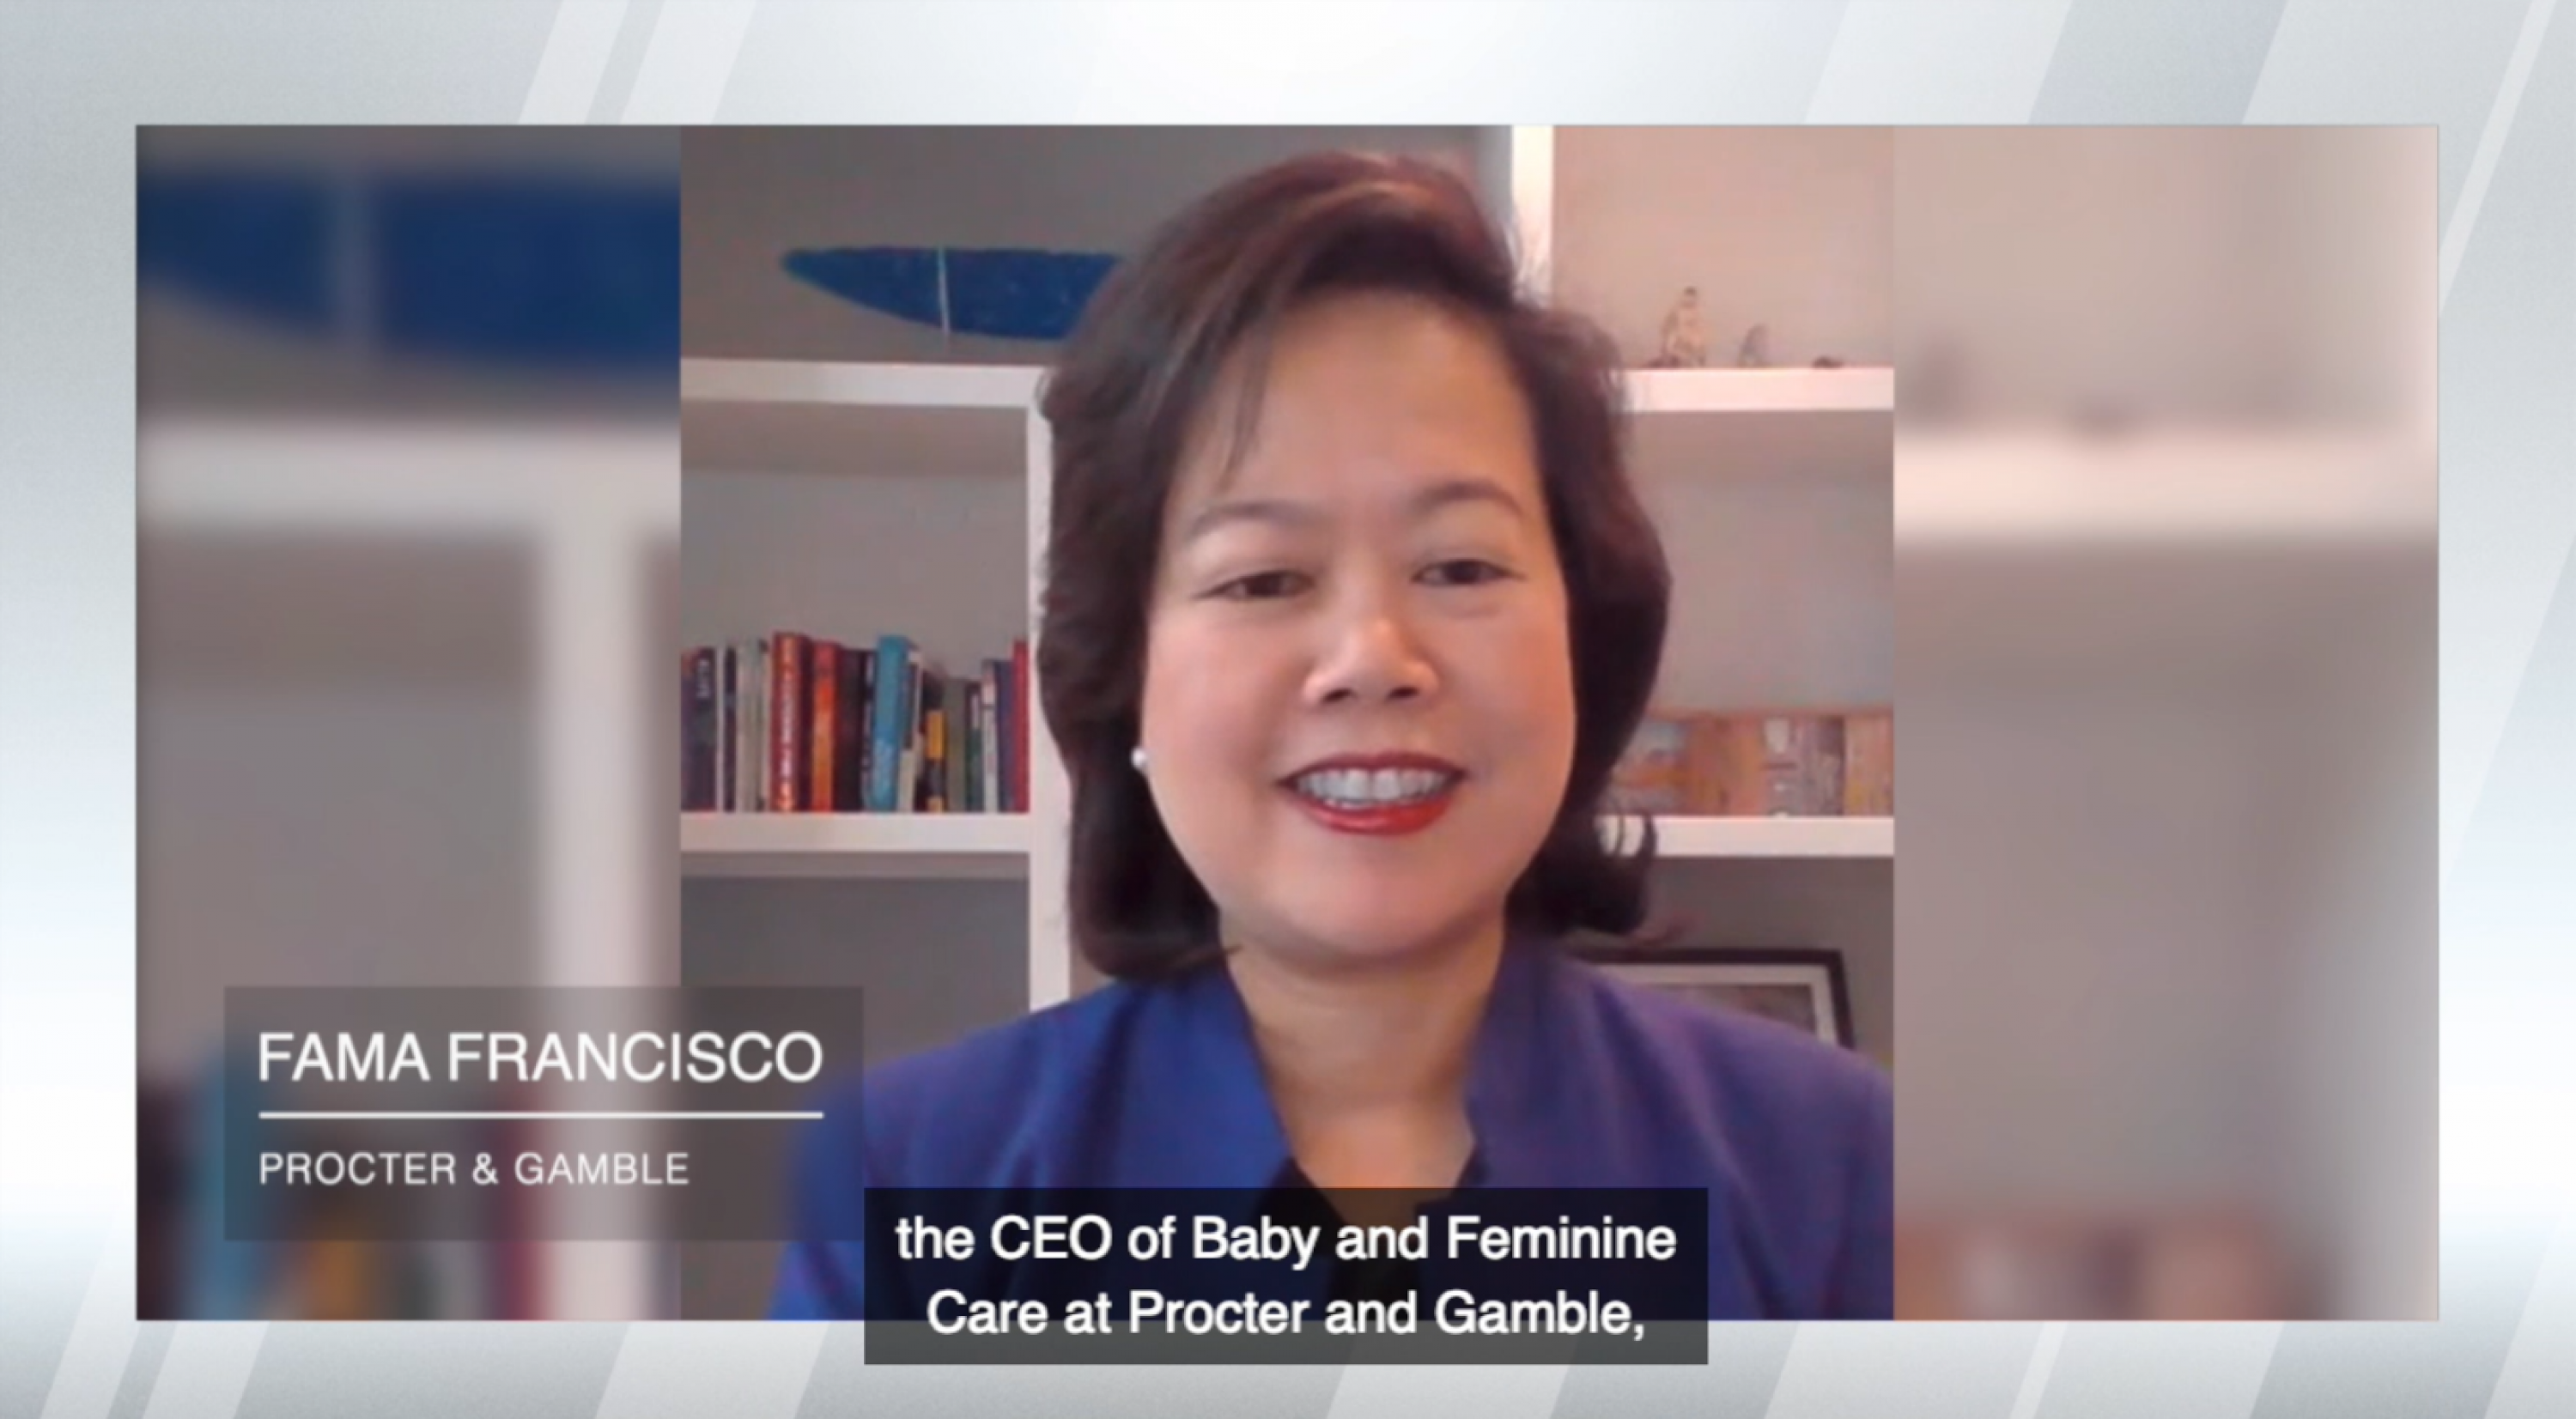 In Conversation with Fama Francisco, CEO Feminine and Baby Care at P&G